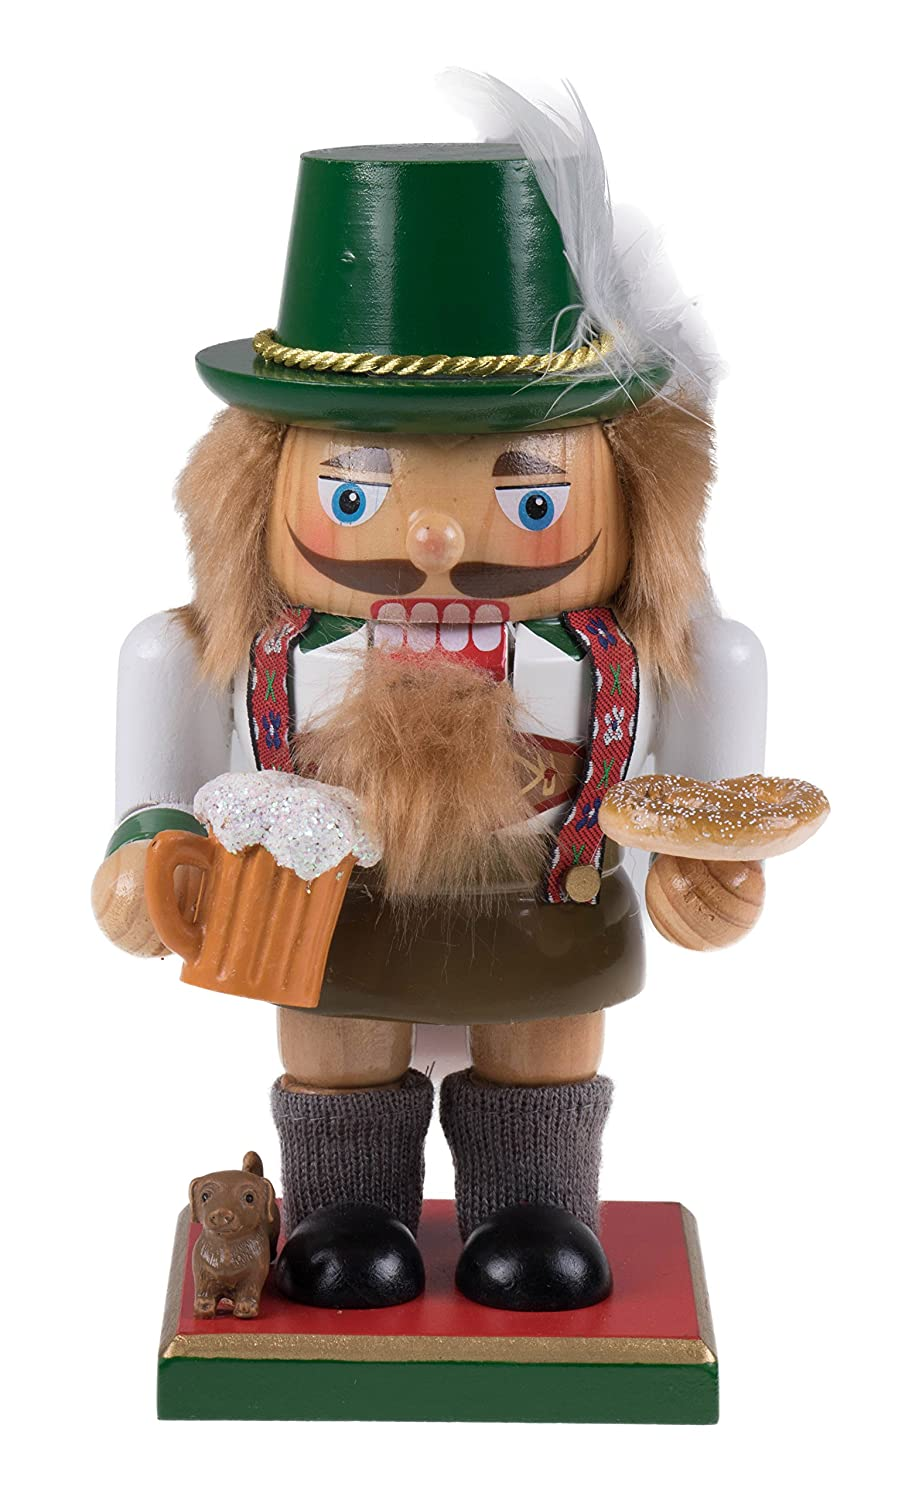 Clever Creations Classic Chubby German Nutcracker Wearing Lederhosen &  Holding a Mug | Festive Collectible Decor | Perfect for Shelves and Tables  |